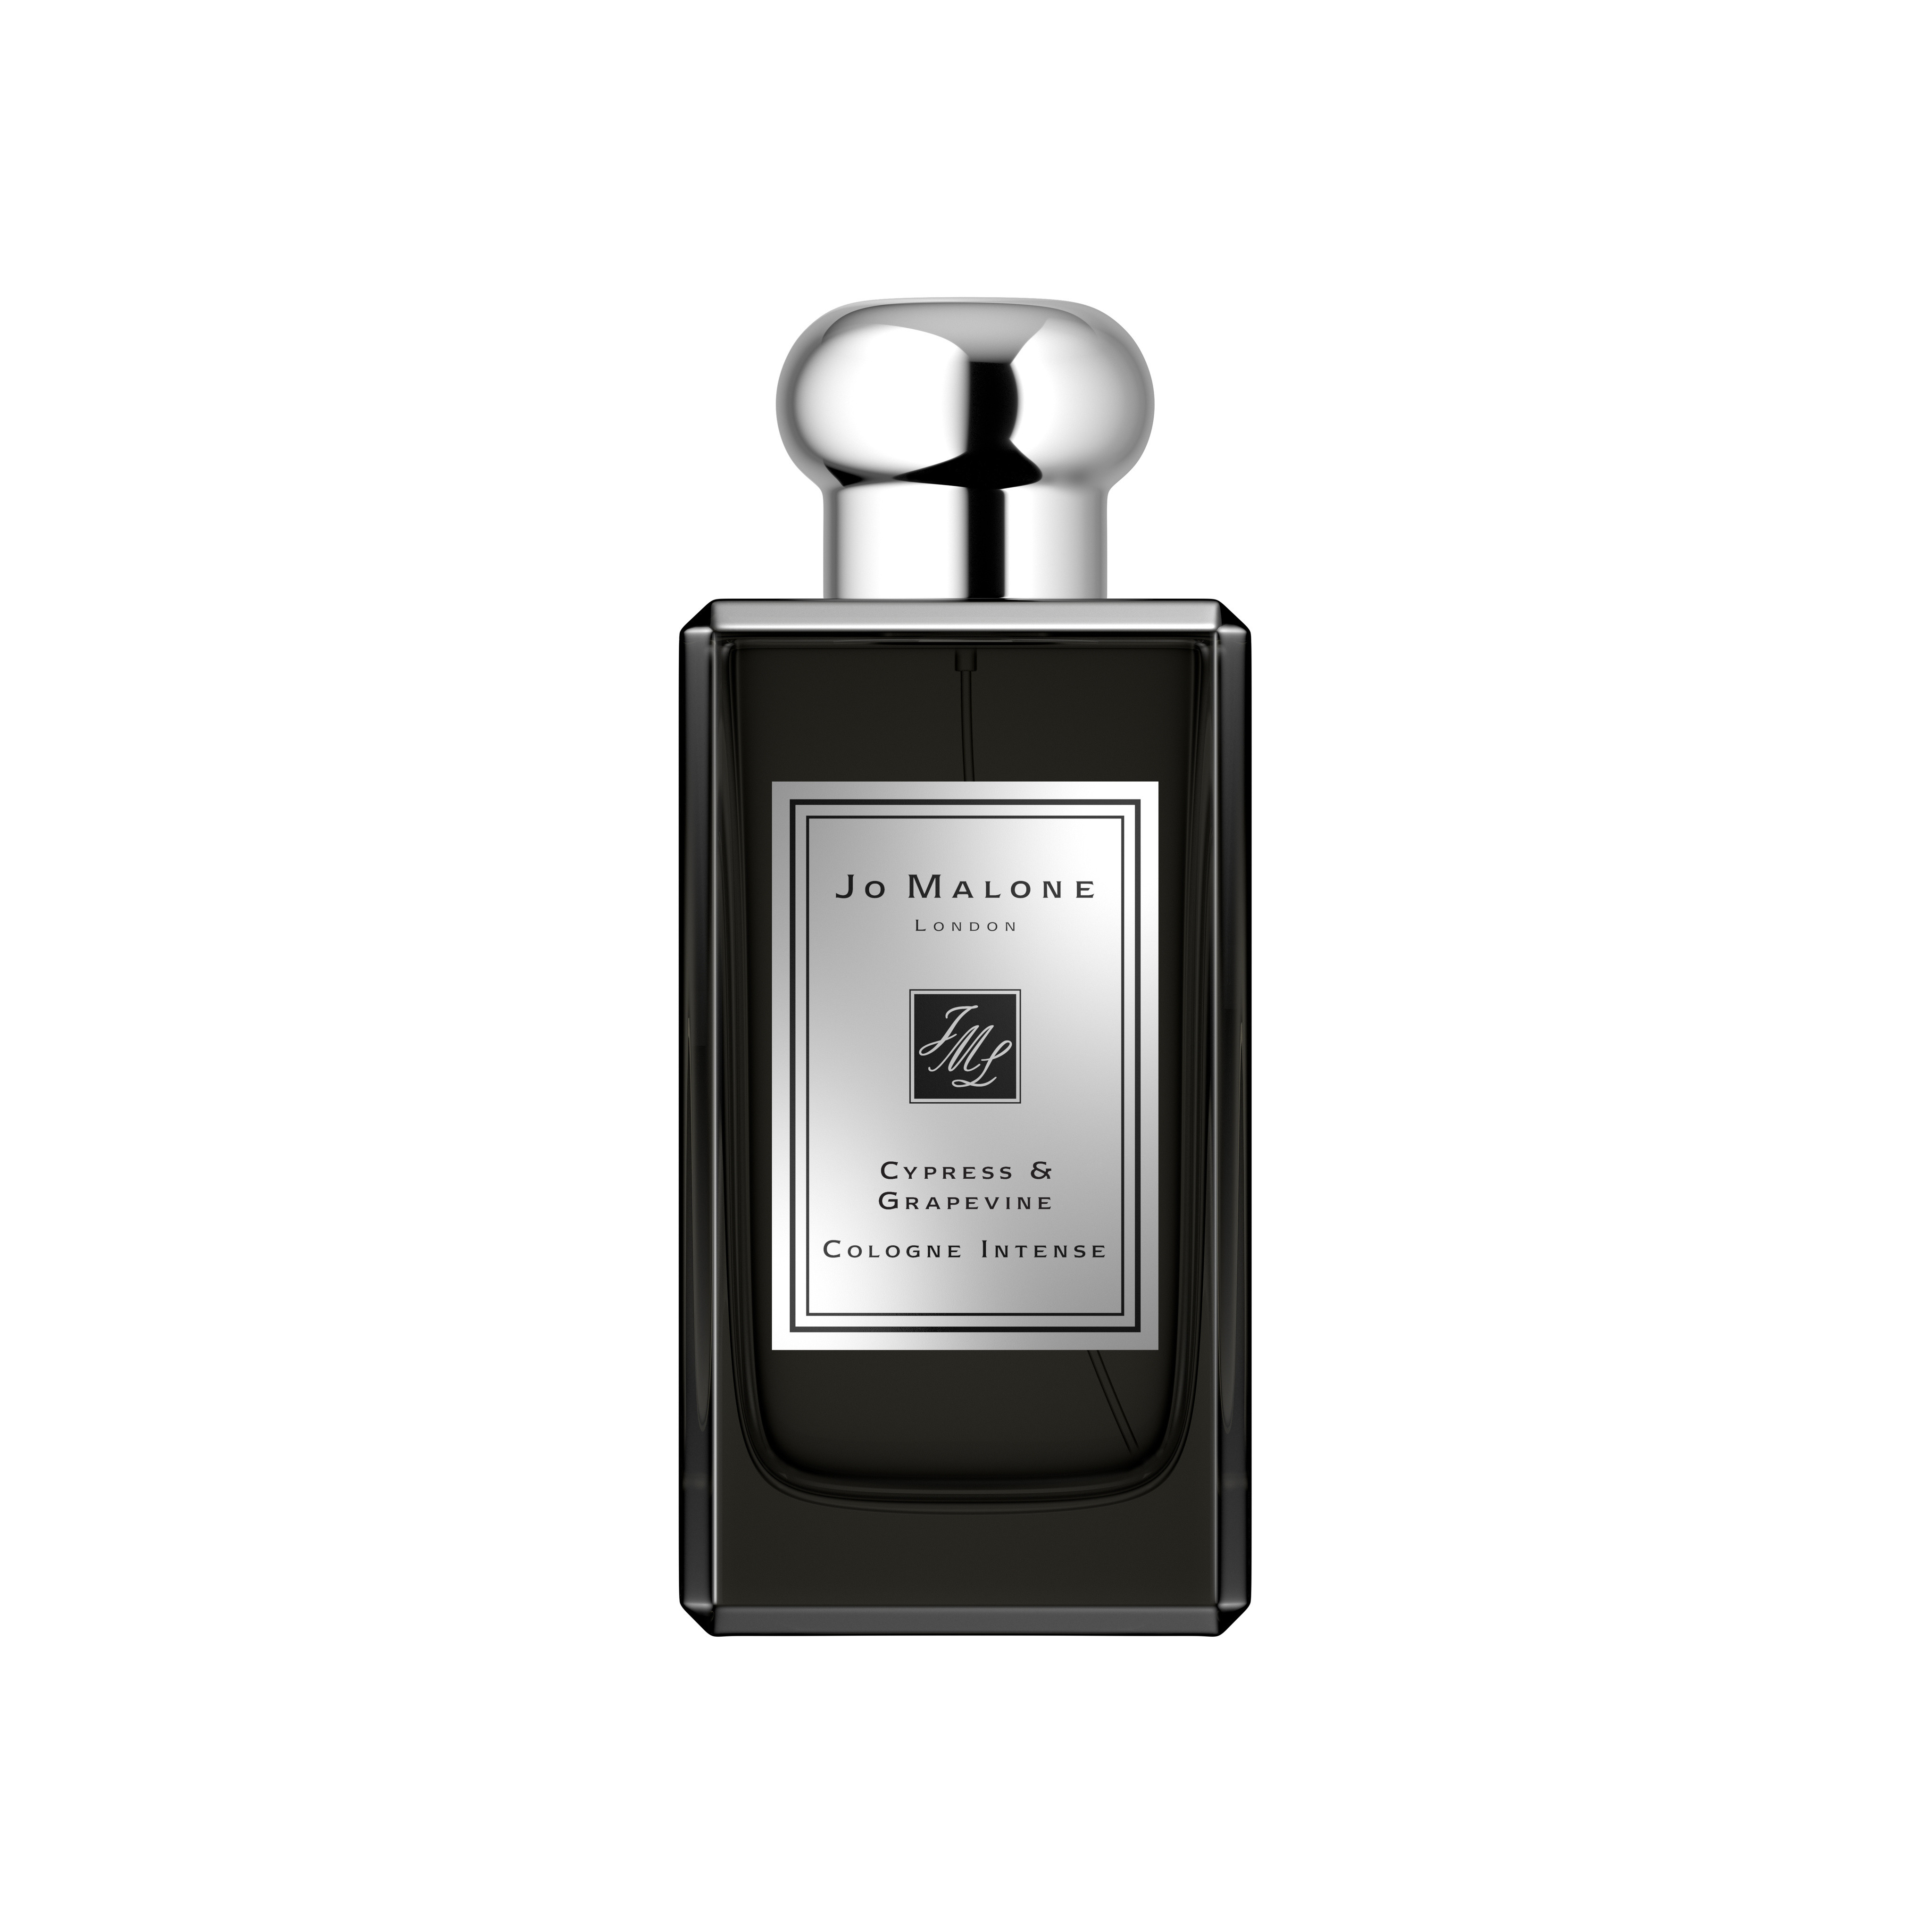 Jo Malone London cypress & grapevine cologne intense 100 ml, Beige, large image number 0